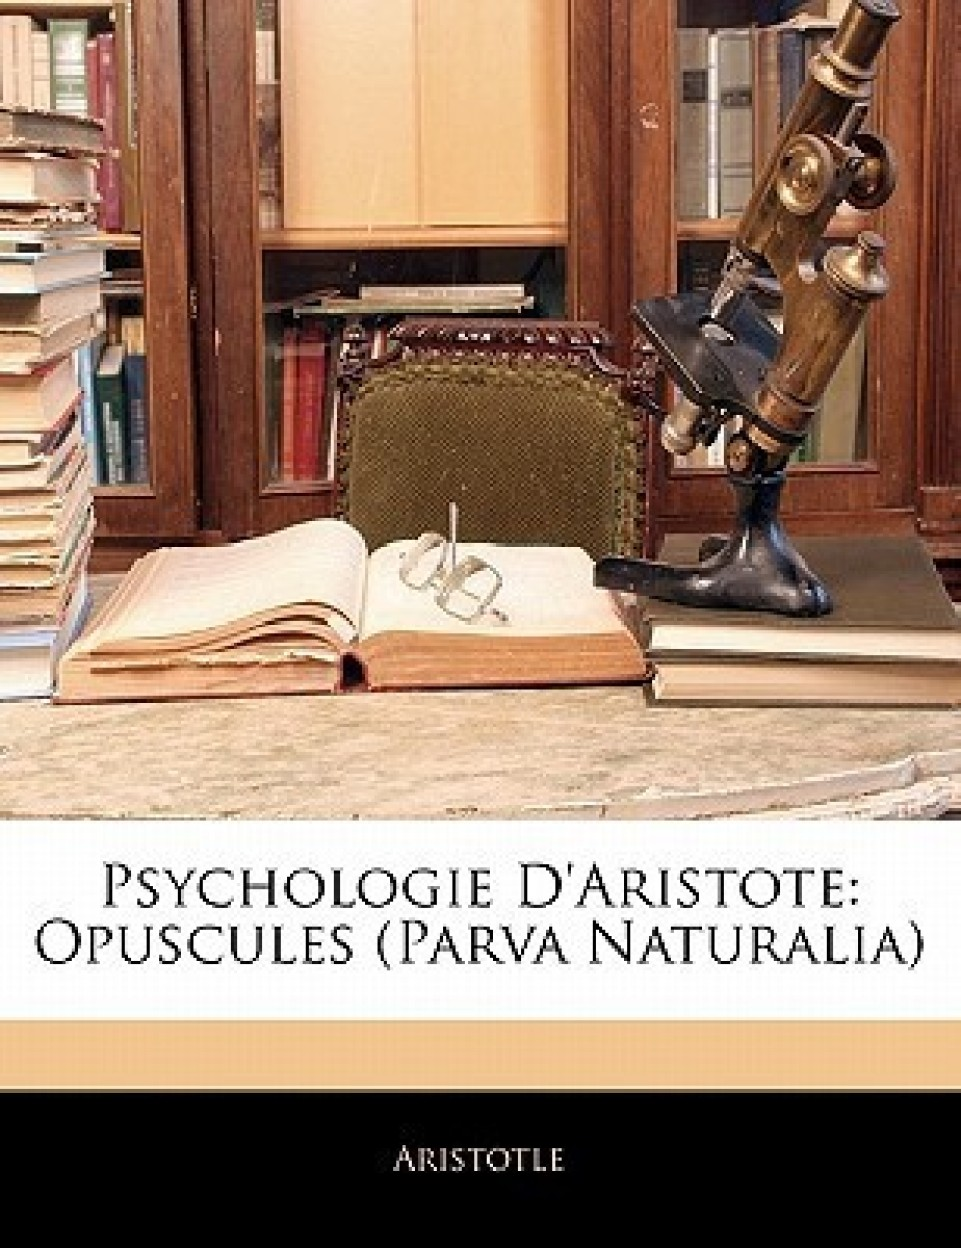 Psychologie D'Aristote: Opuscules (Parva Naturalia) (Paperback - French)